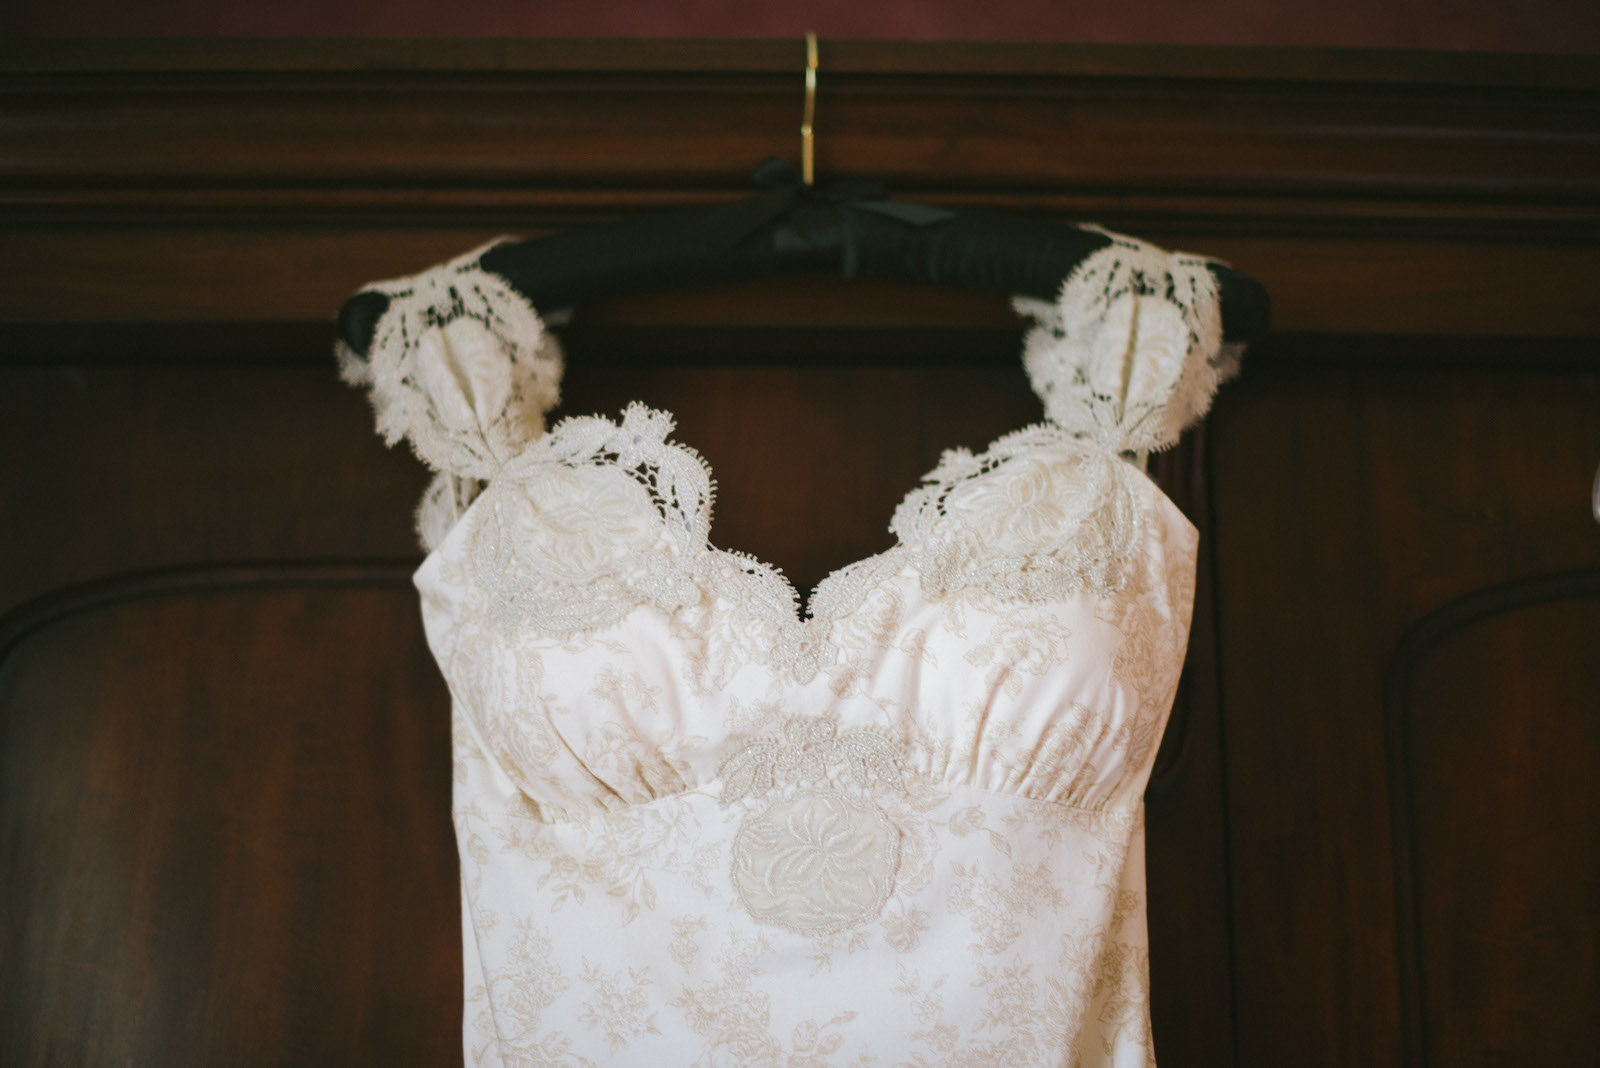 Vintage wedding dress at Lyde Court wedding venue